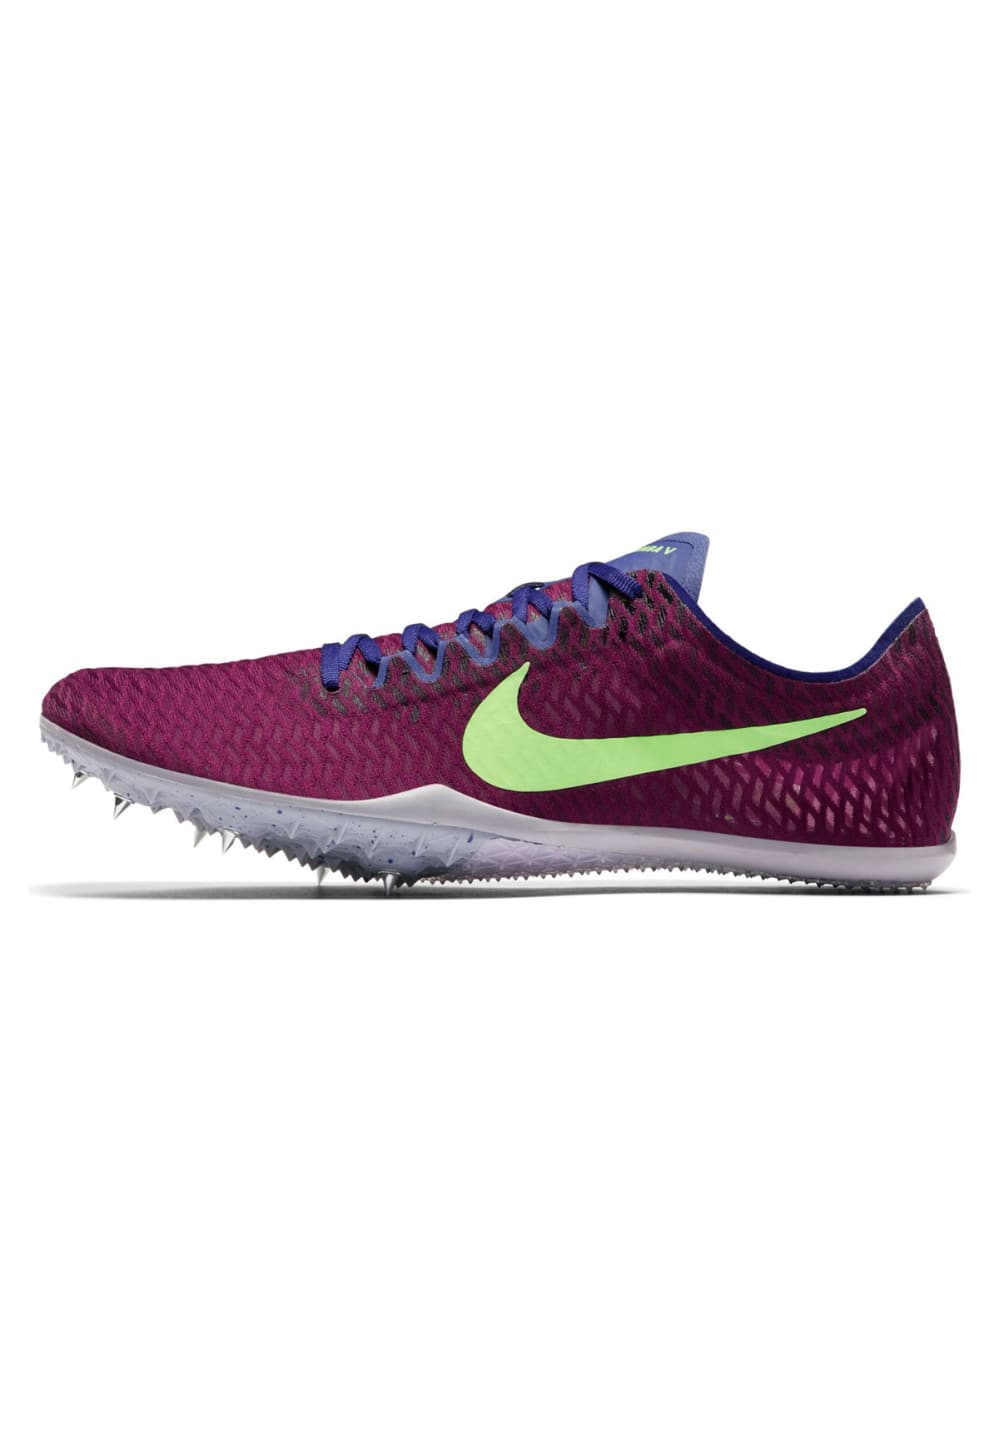 info for cb990 5edb8 Previous. Next. -60%. Nike. Zoom Mamba V - Zapatillas de atletismo